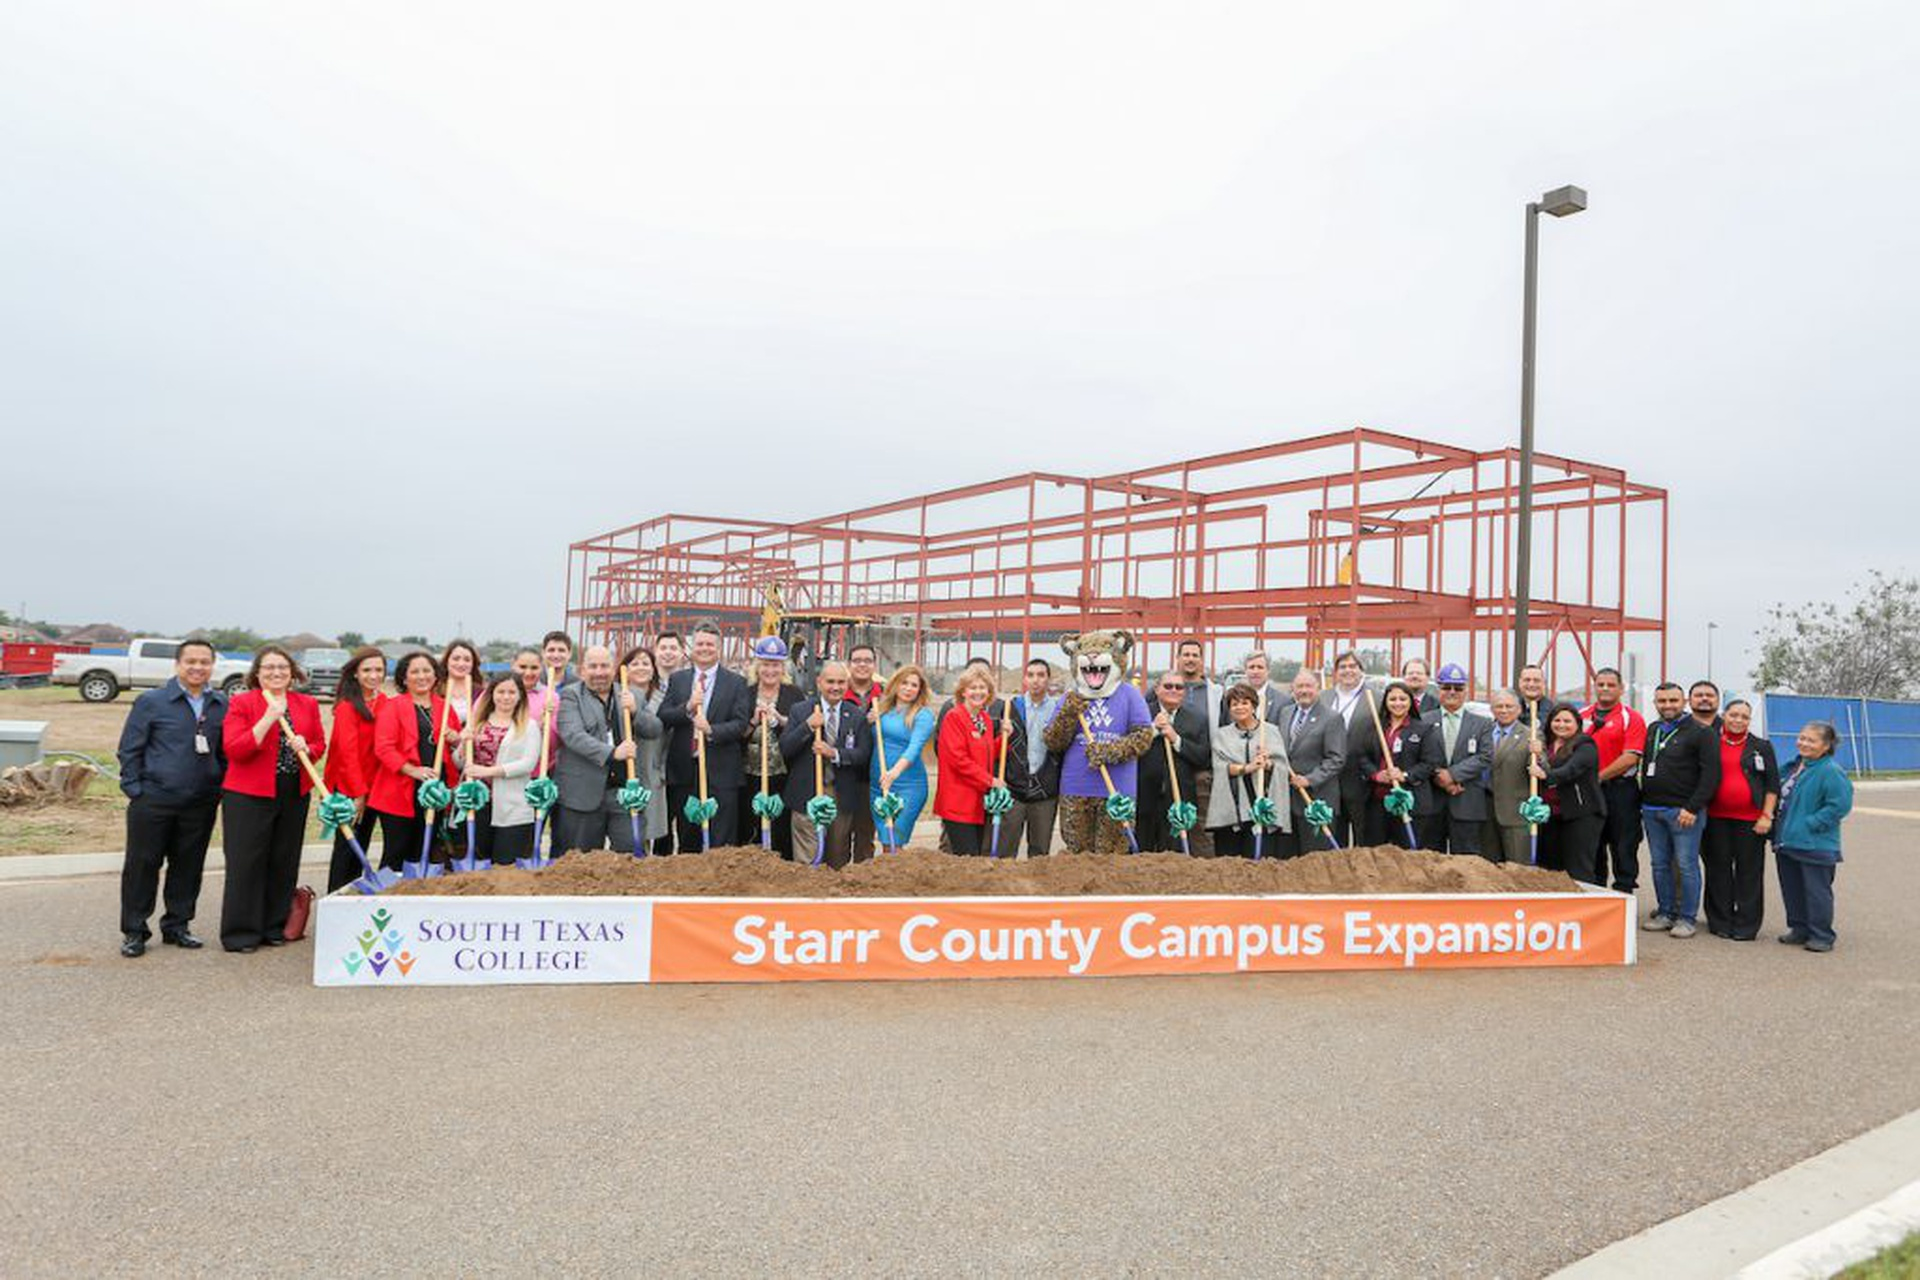 Starr-County-Campus-Expansion-77-1024x683.jpg